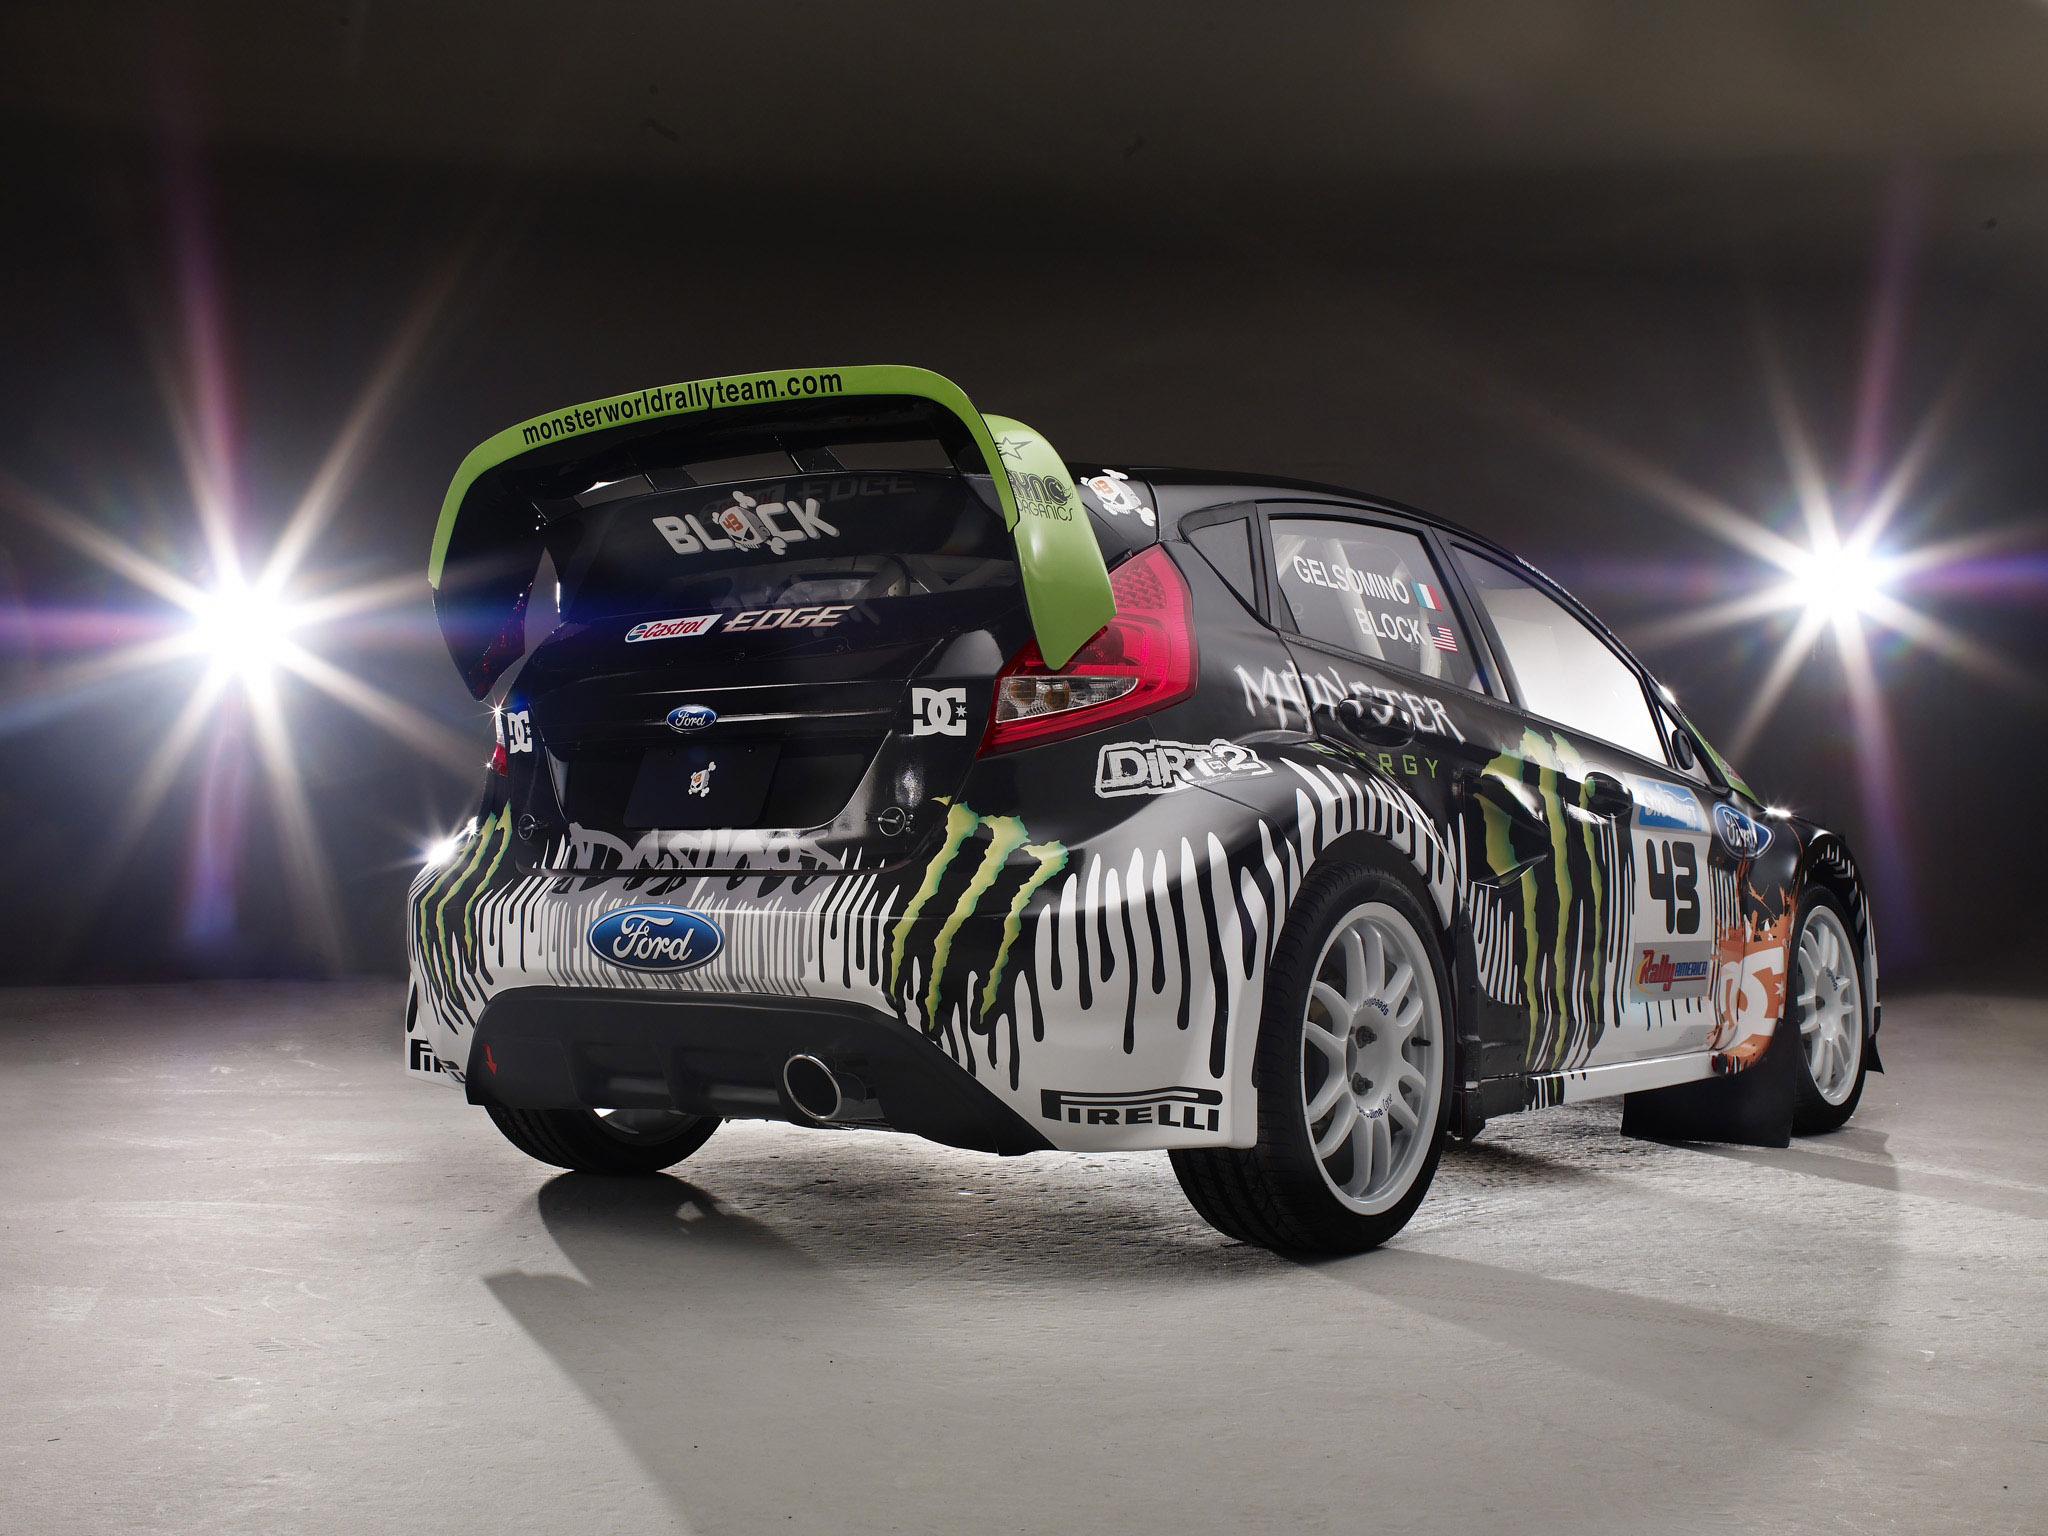 2010 ford fiesta monster world rally race racing tuning f. Black Bedroom Furniture Sets. Home Design Ideas